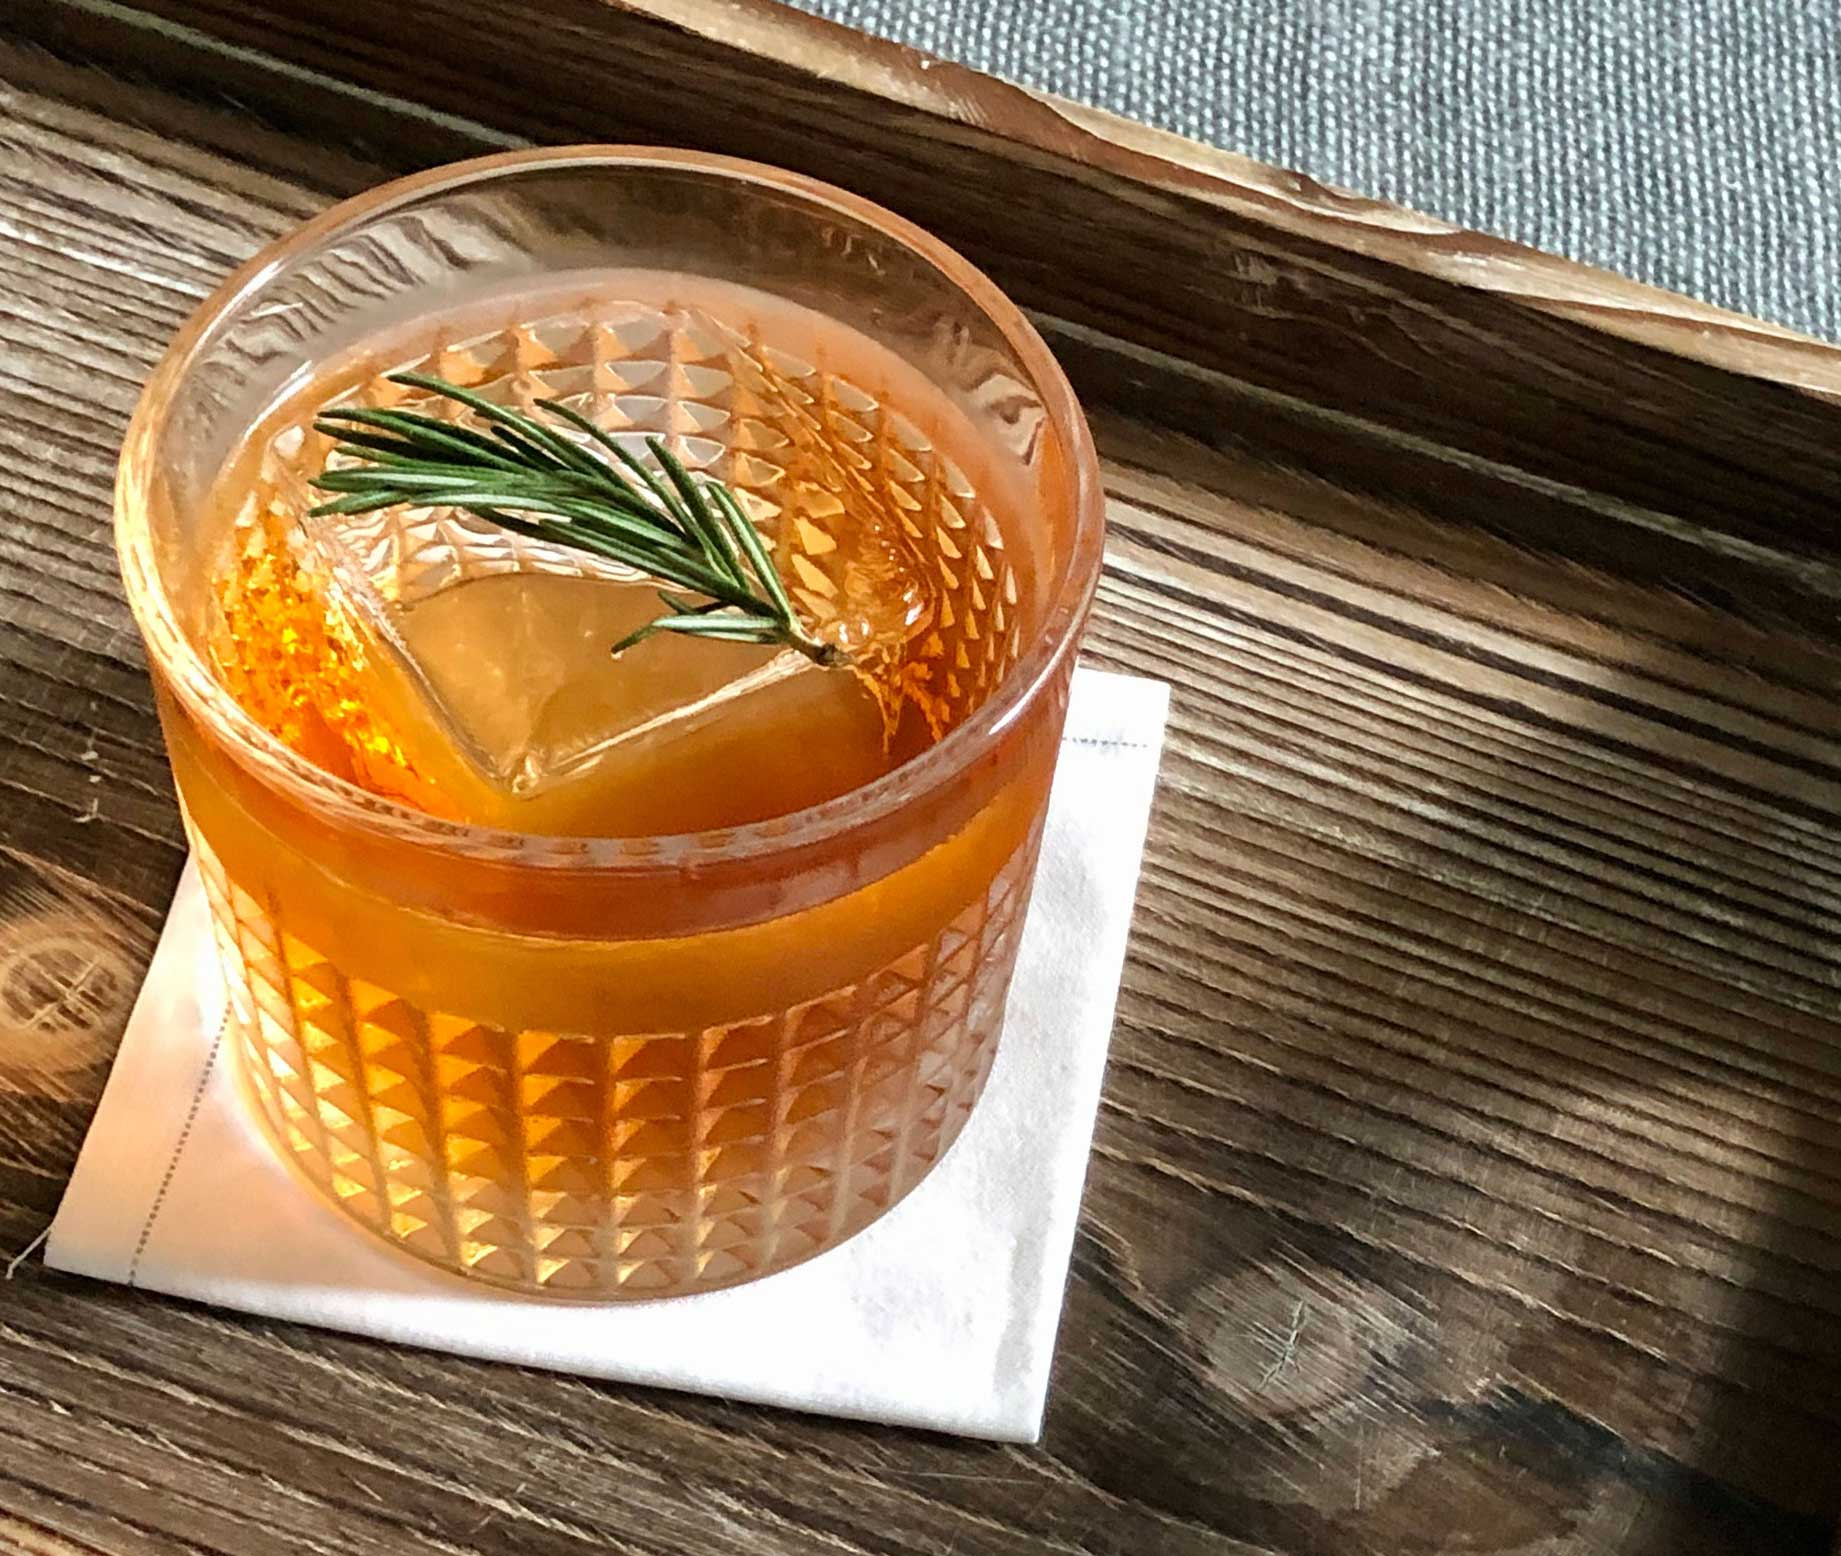 An example of the Schleswig Limbo, the mixed drink (cocktail), adapted from a drink by Luiggi Uzcategui, Big Orange, Little Rock, Arkansas, featuring Purkhart Pear Williams Eau-de-Vie, The Scarlet Ibis Trinidad Rum, Rothman & Winter Orchard Cherry Liqueur, and Aperitivo Cappelletti; photo by Lee Edwards